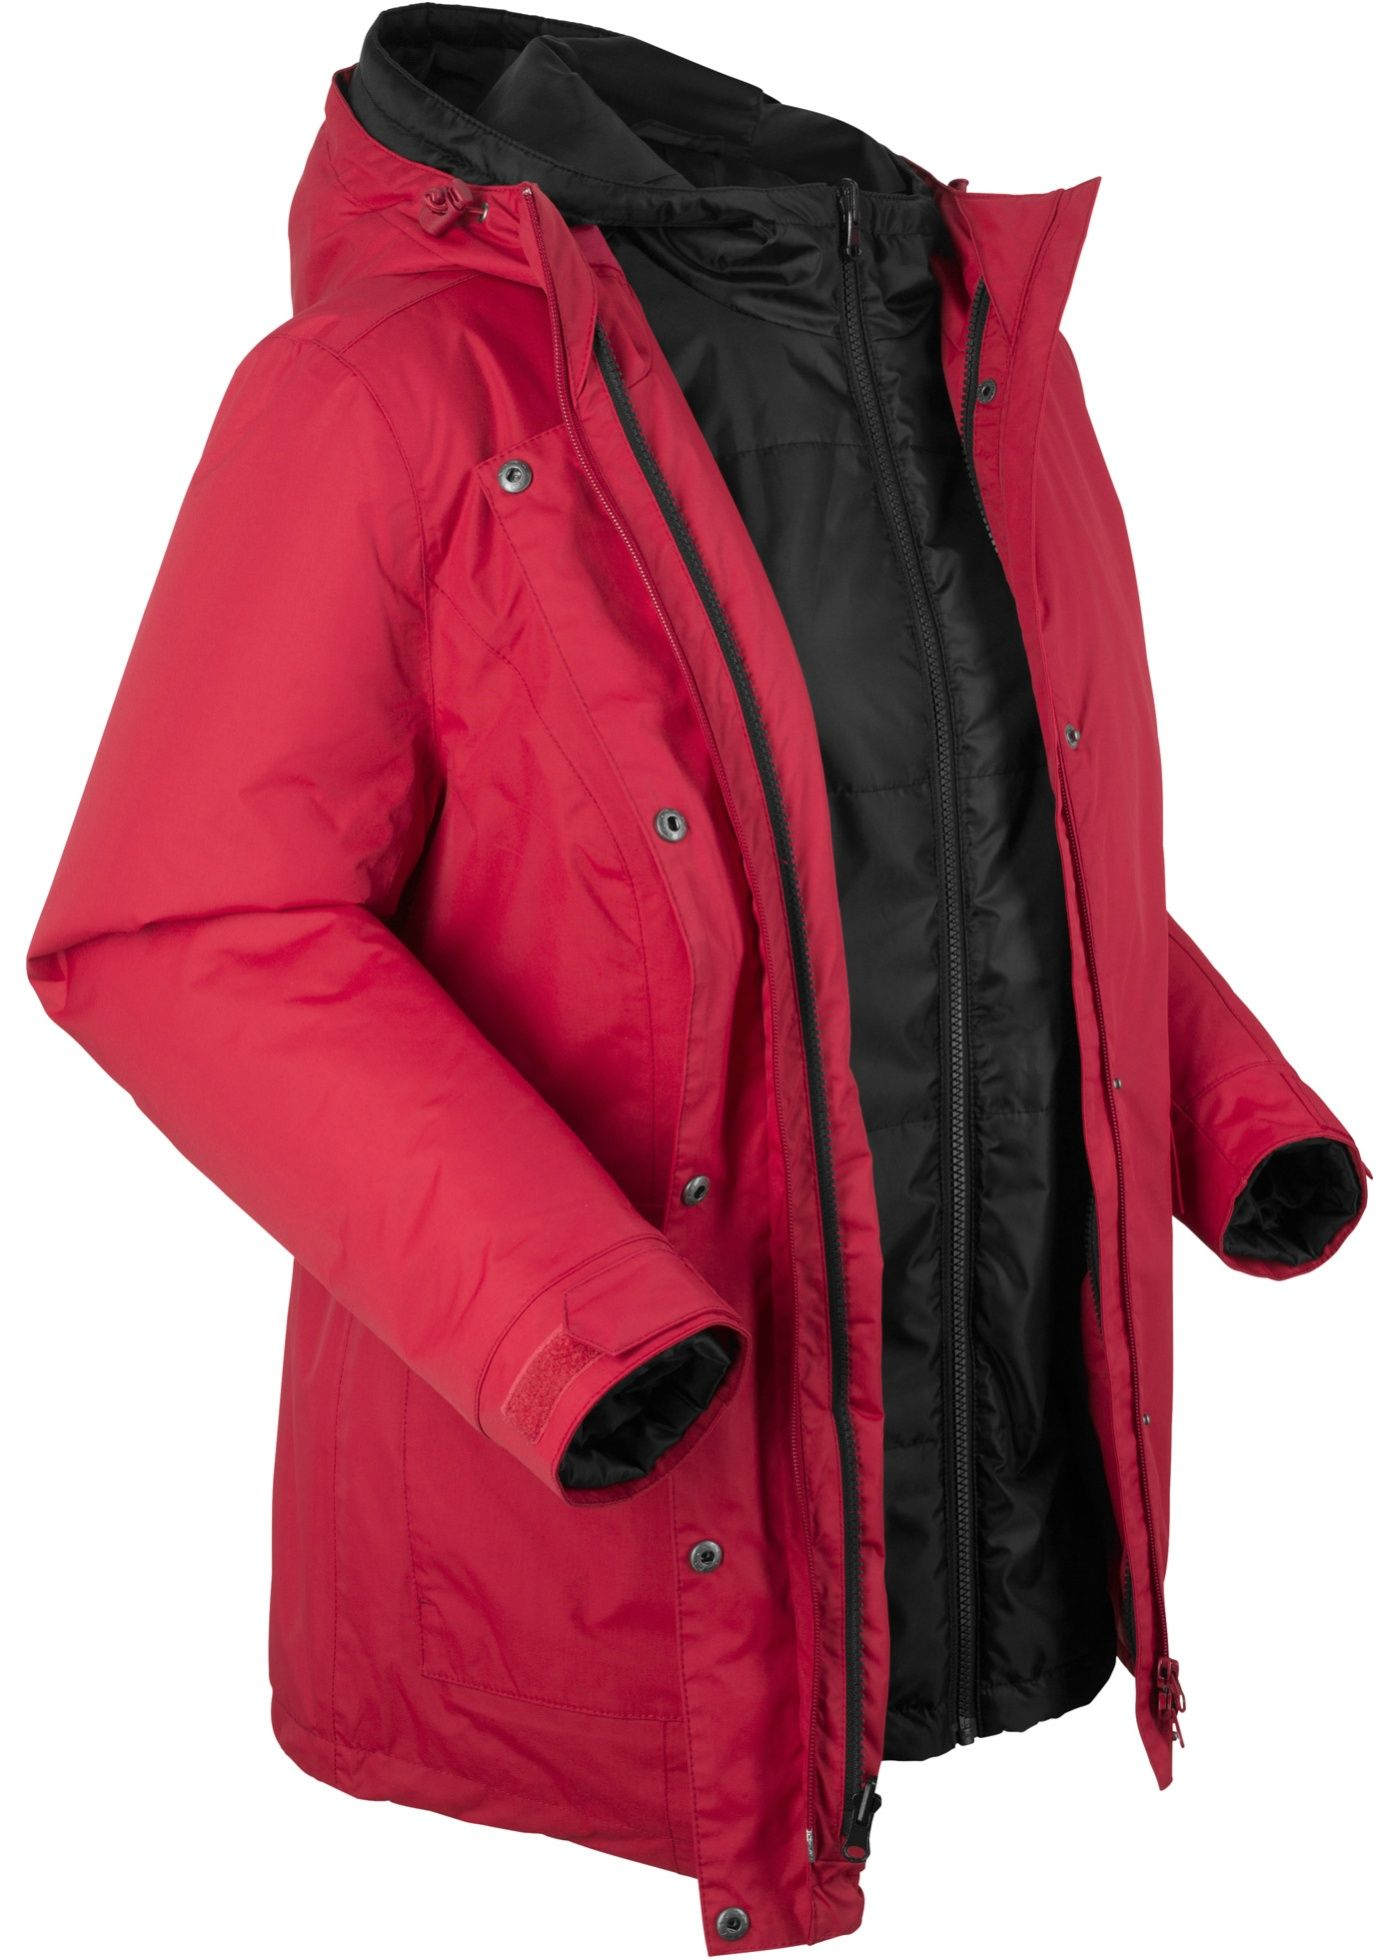 damen 3 in 1 funktions outdoorjacke